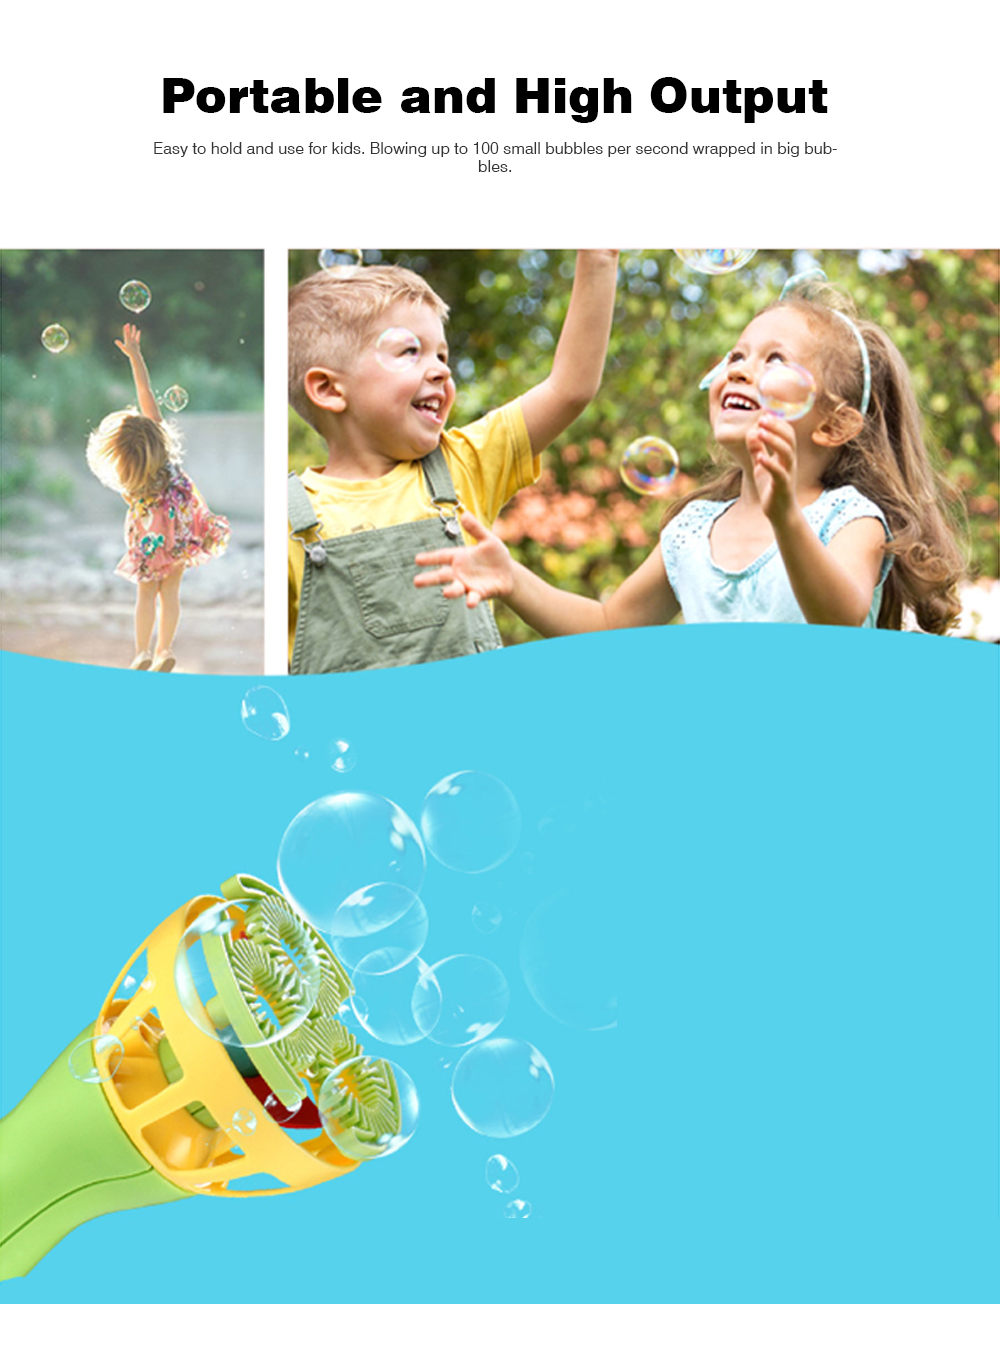 Bubble Gun Shooter Electric Toy Blaster with 5 Barrels, Leak Resistant Bubble Machine with Small Fan for Kids to Cooling 5